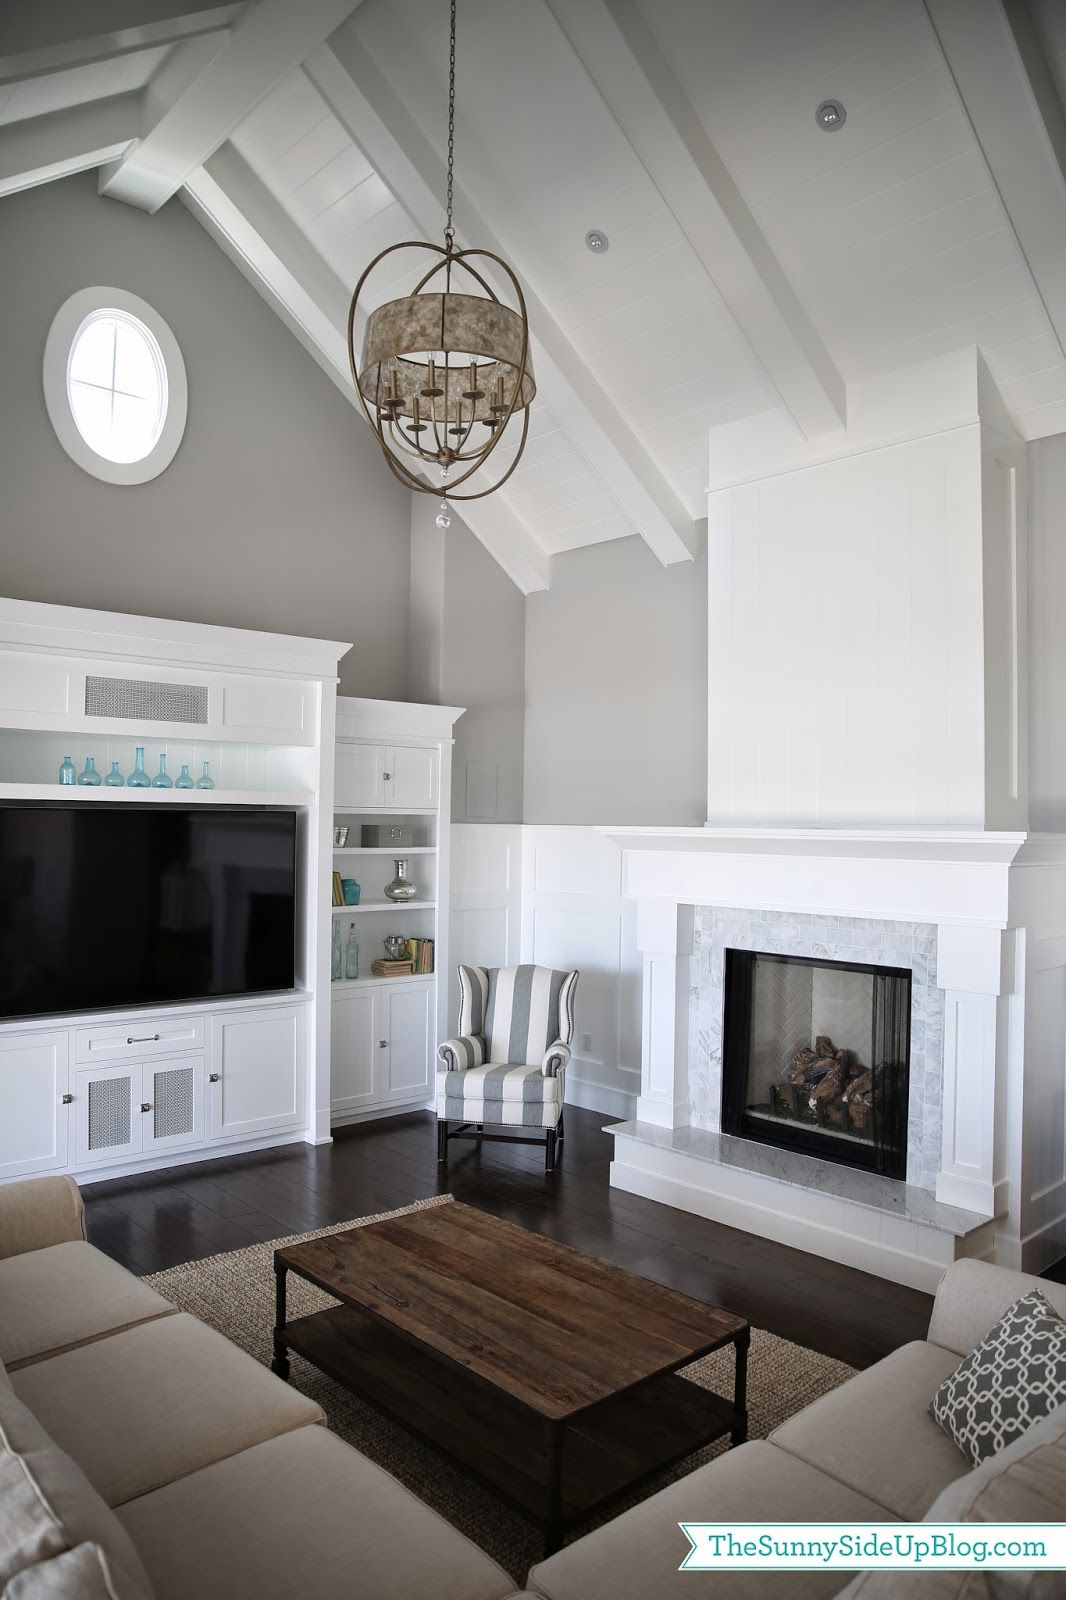 Cathedral Ceilings On Pinterest Full Bath Gas Fireplaces And Vinyl Siding